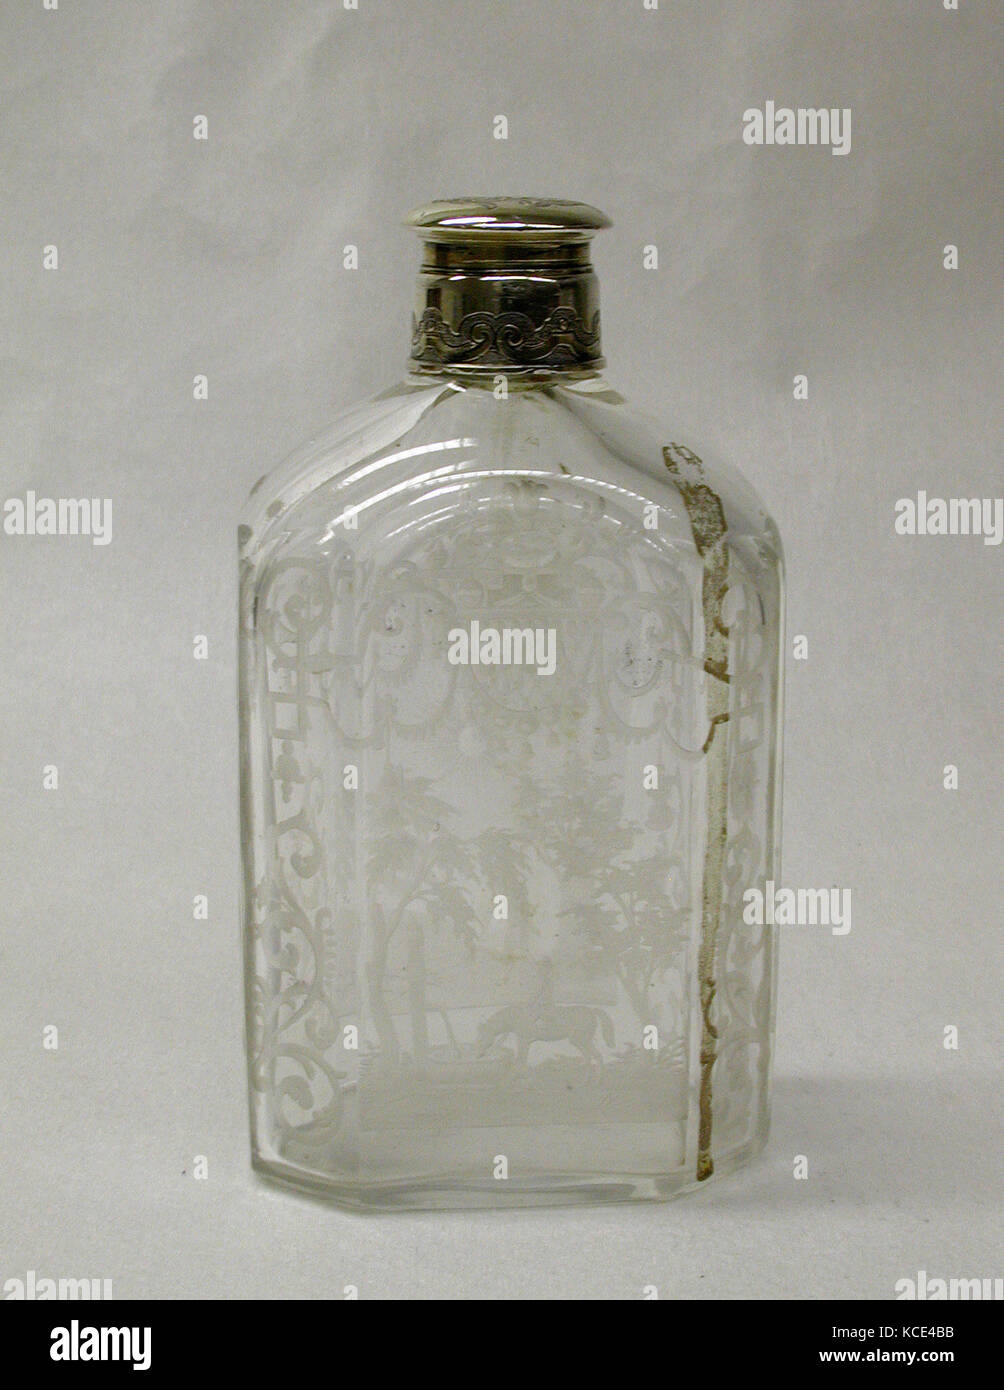 Bb Augsburg flask one of a pair 18th century german augsburg cut glass